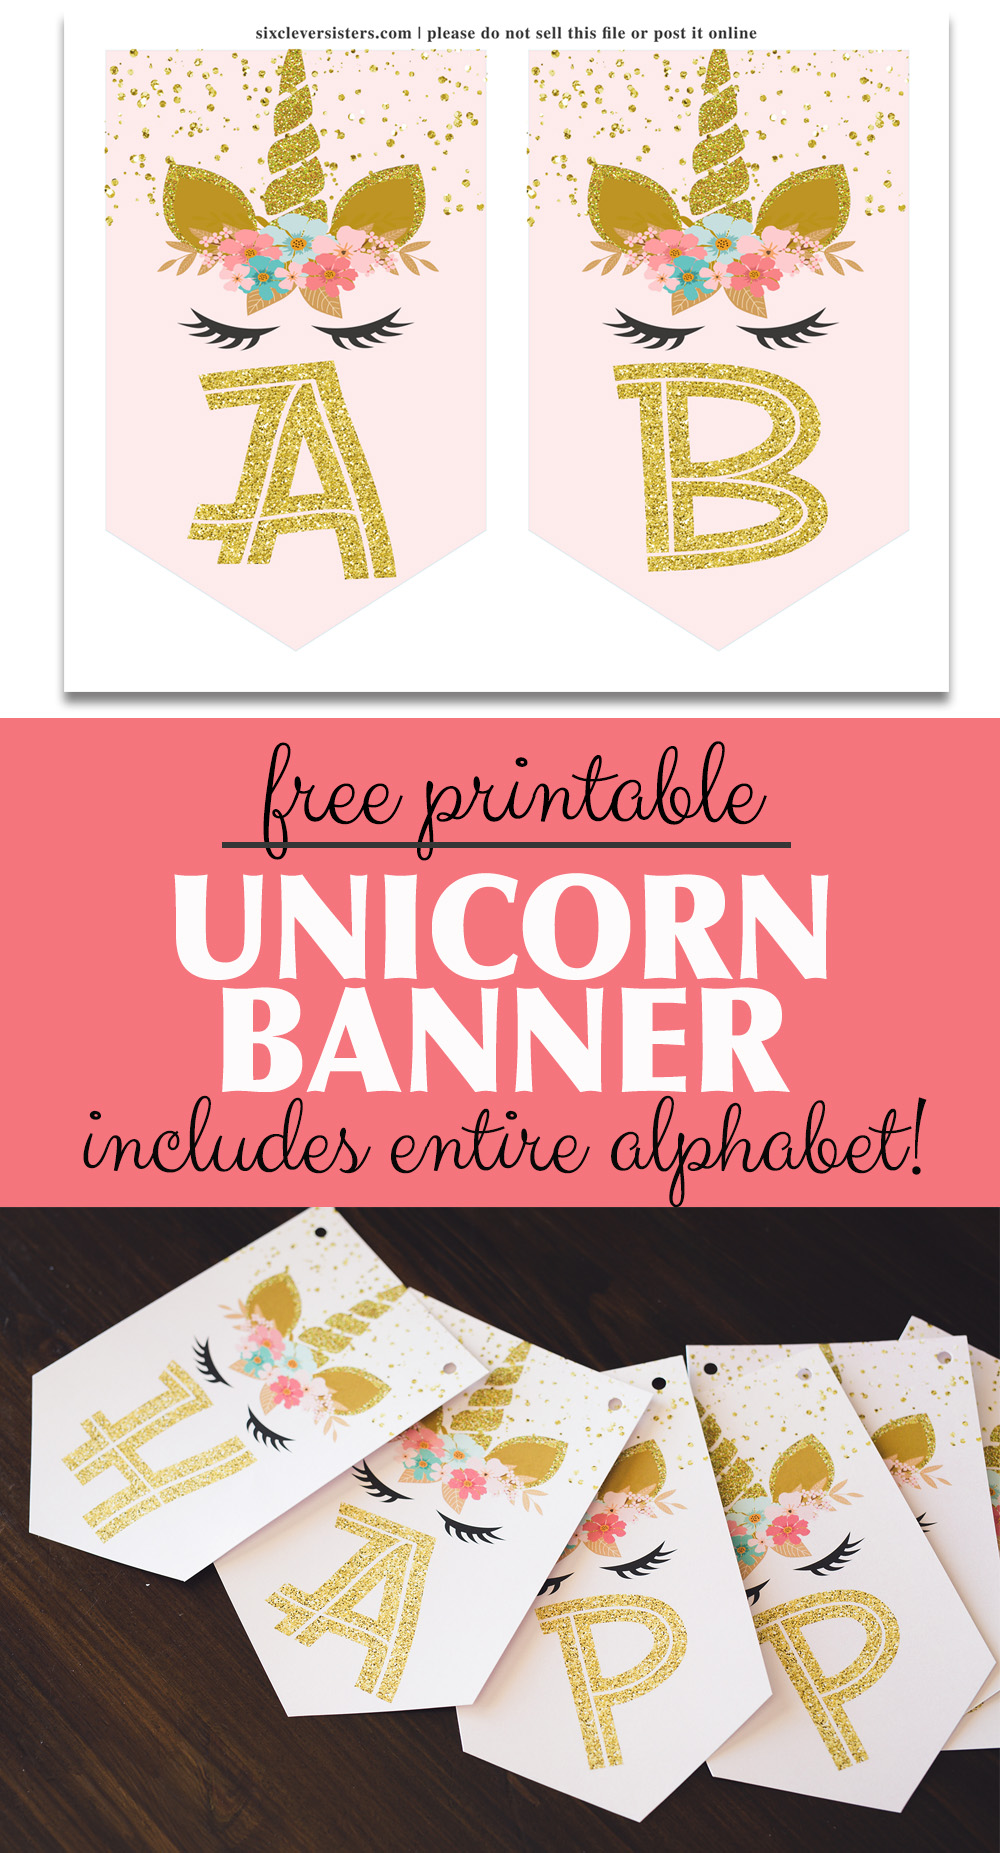 photograph about Free Unicorn Name Printable called Unicorn Banner Absolutely free Printable! (red gold unicorn banner!)